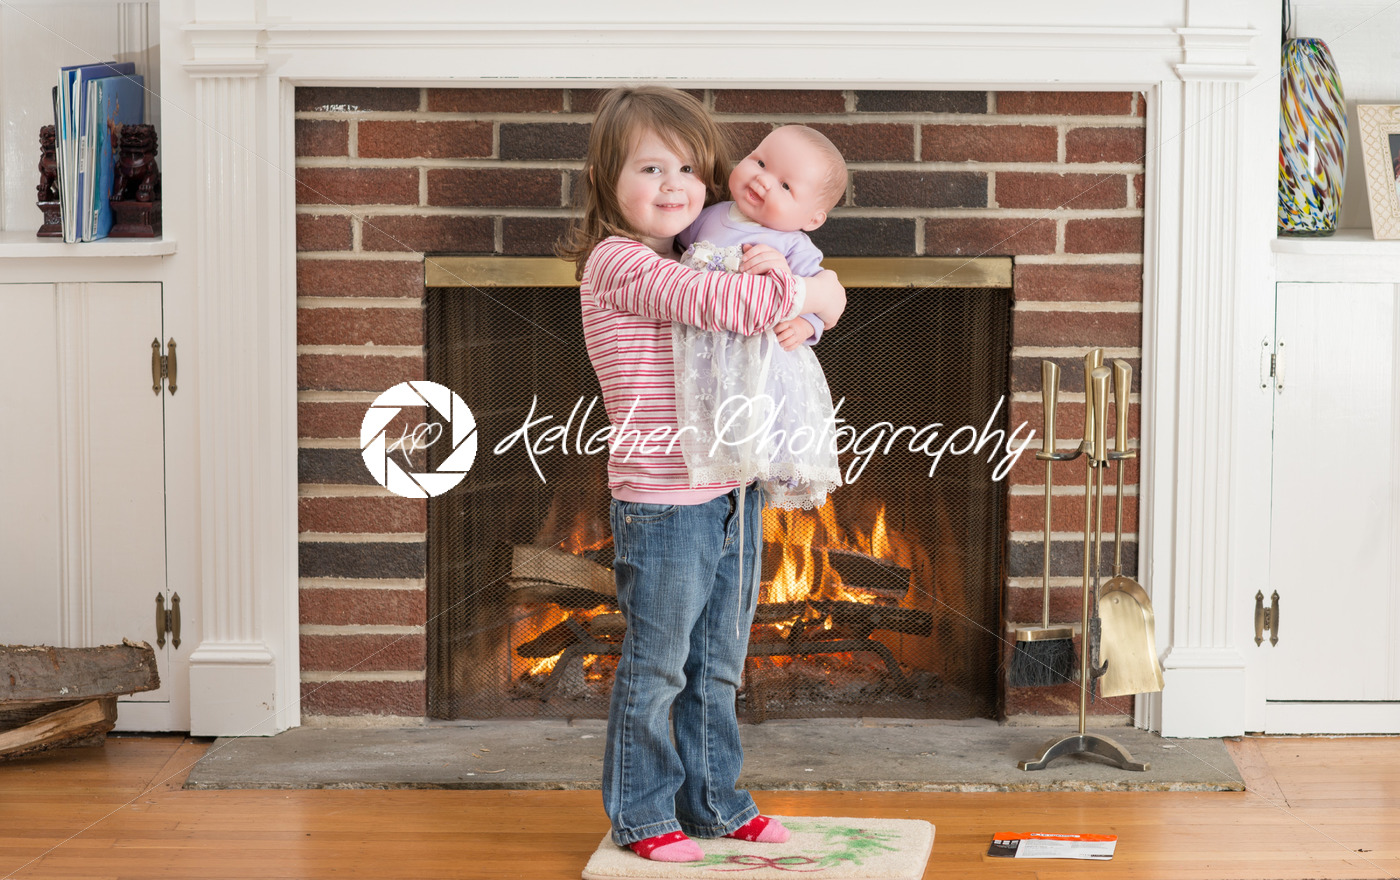 Portrait of a young smiling girl hold a baby doll in front of a fireplace dressed for valentine's day - Kelleher Photography Store